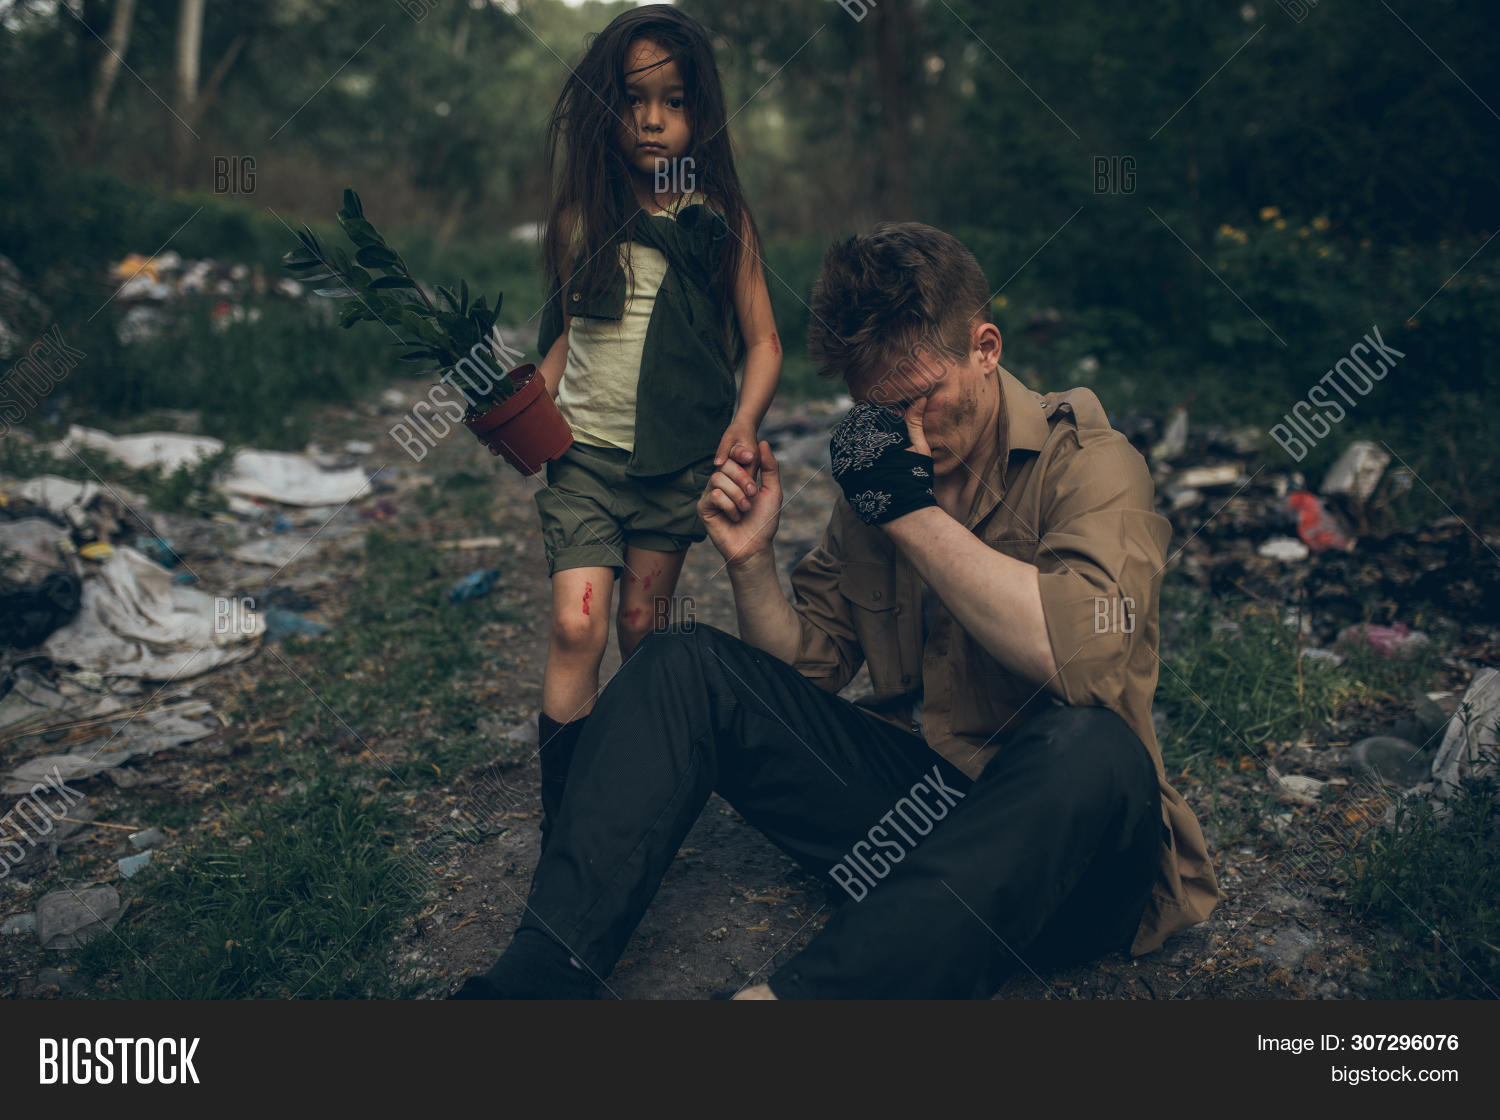 Enjoyable Homeless Crying Father Image Photo Free Trial Bigstock Interior Design Ideas Inesswwsoteloinfo